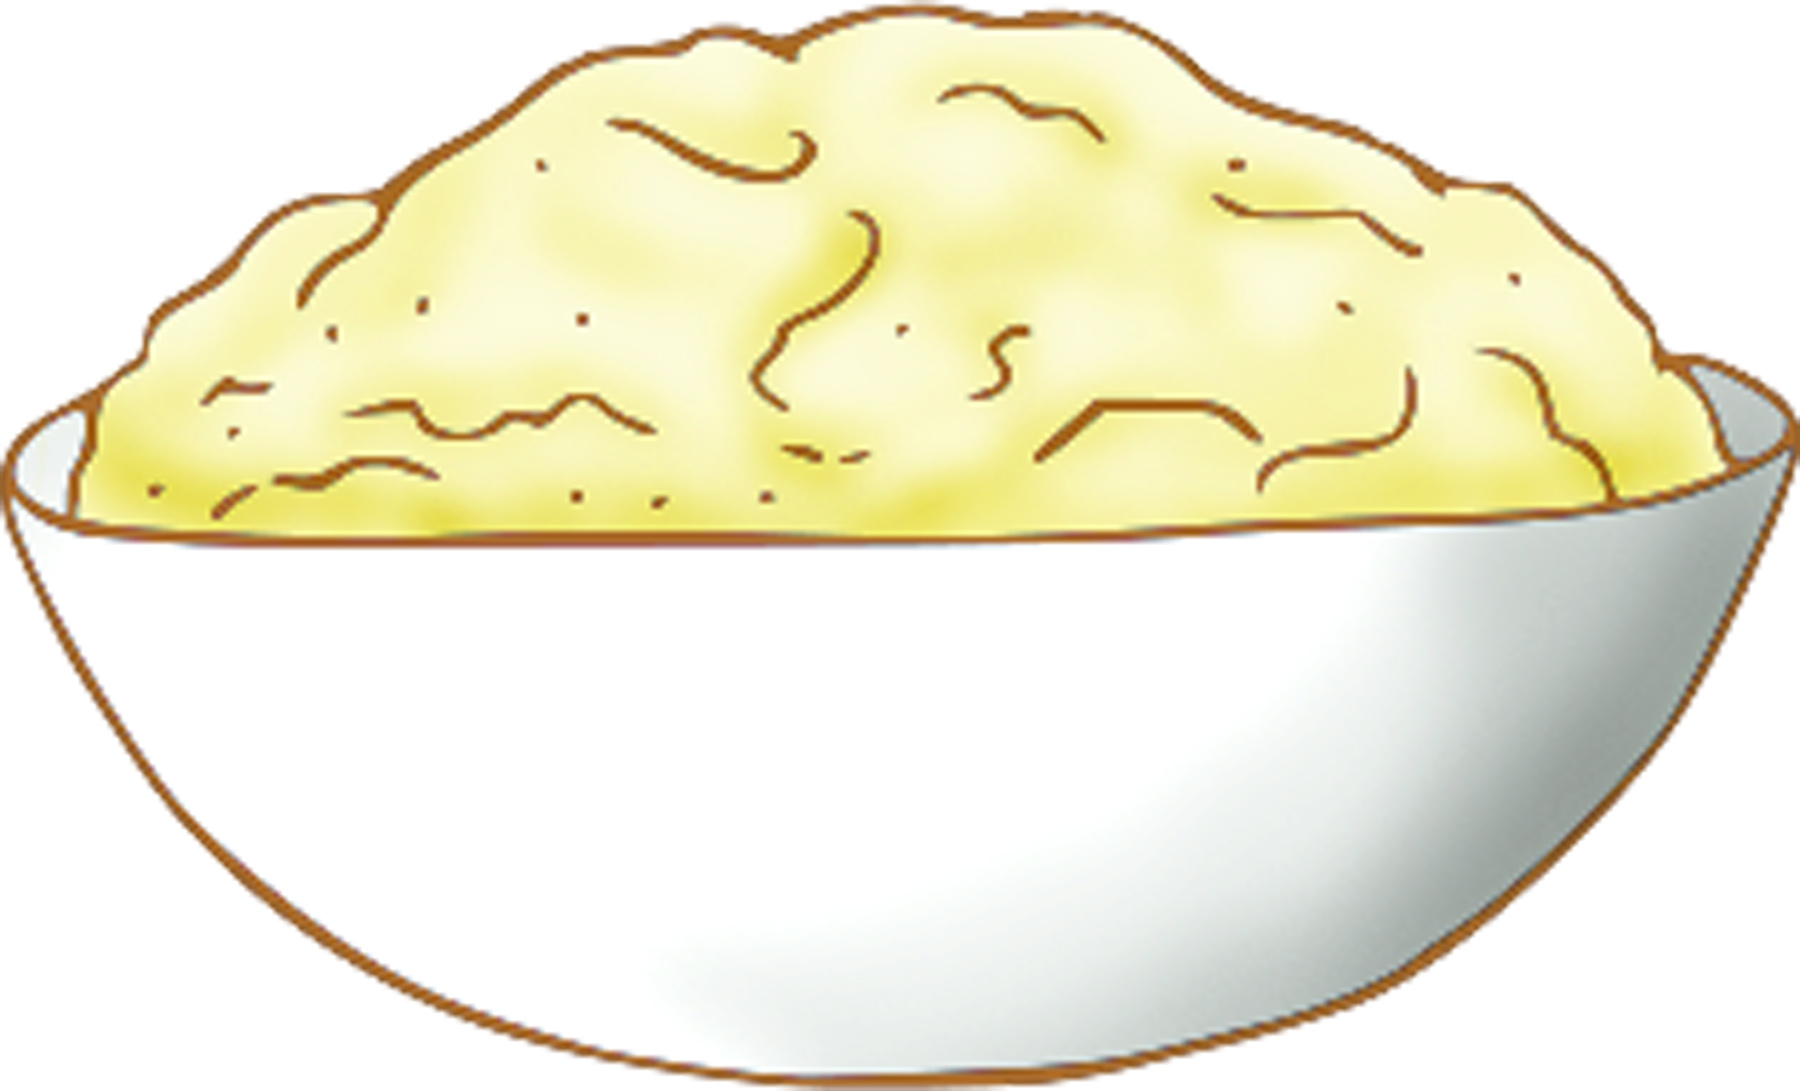 png free stock Mashed clipart. Potatoes clip art library